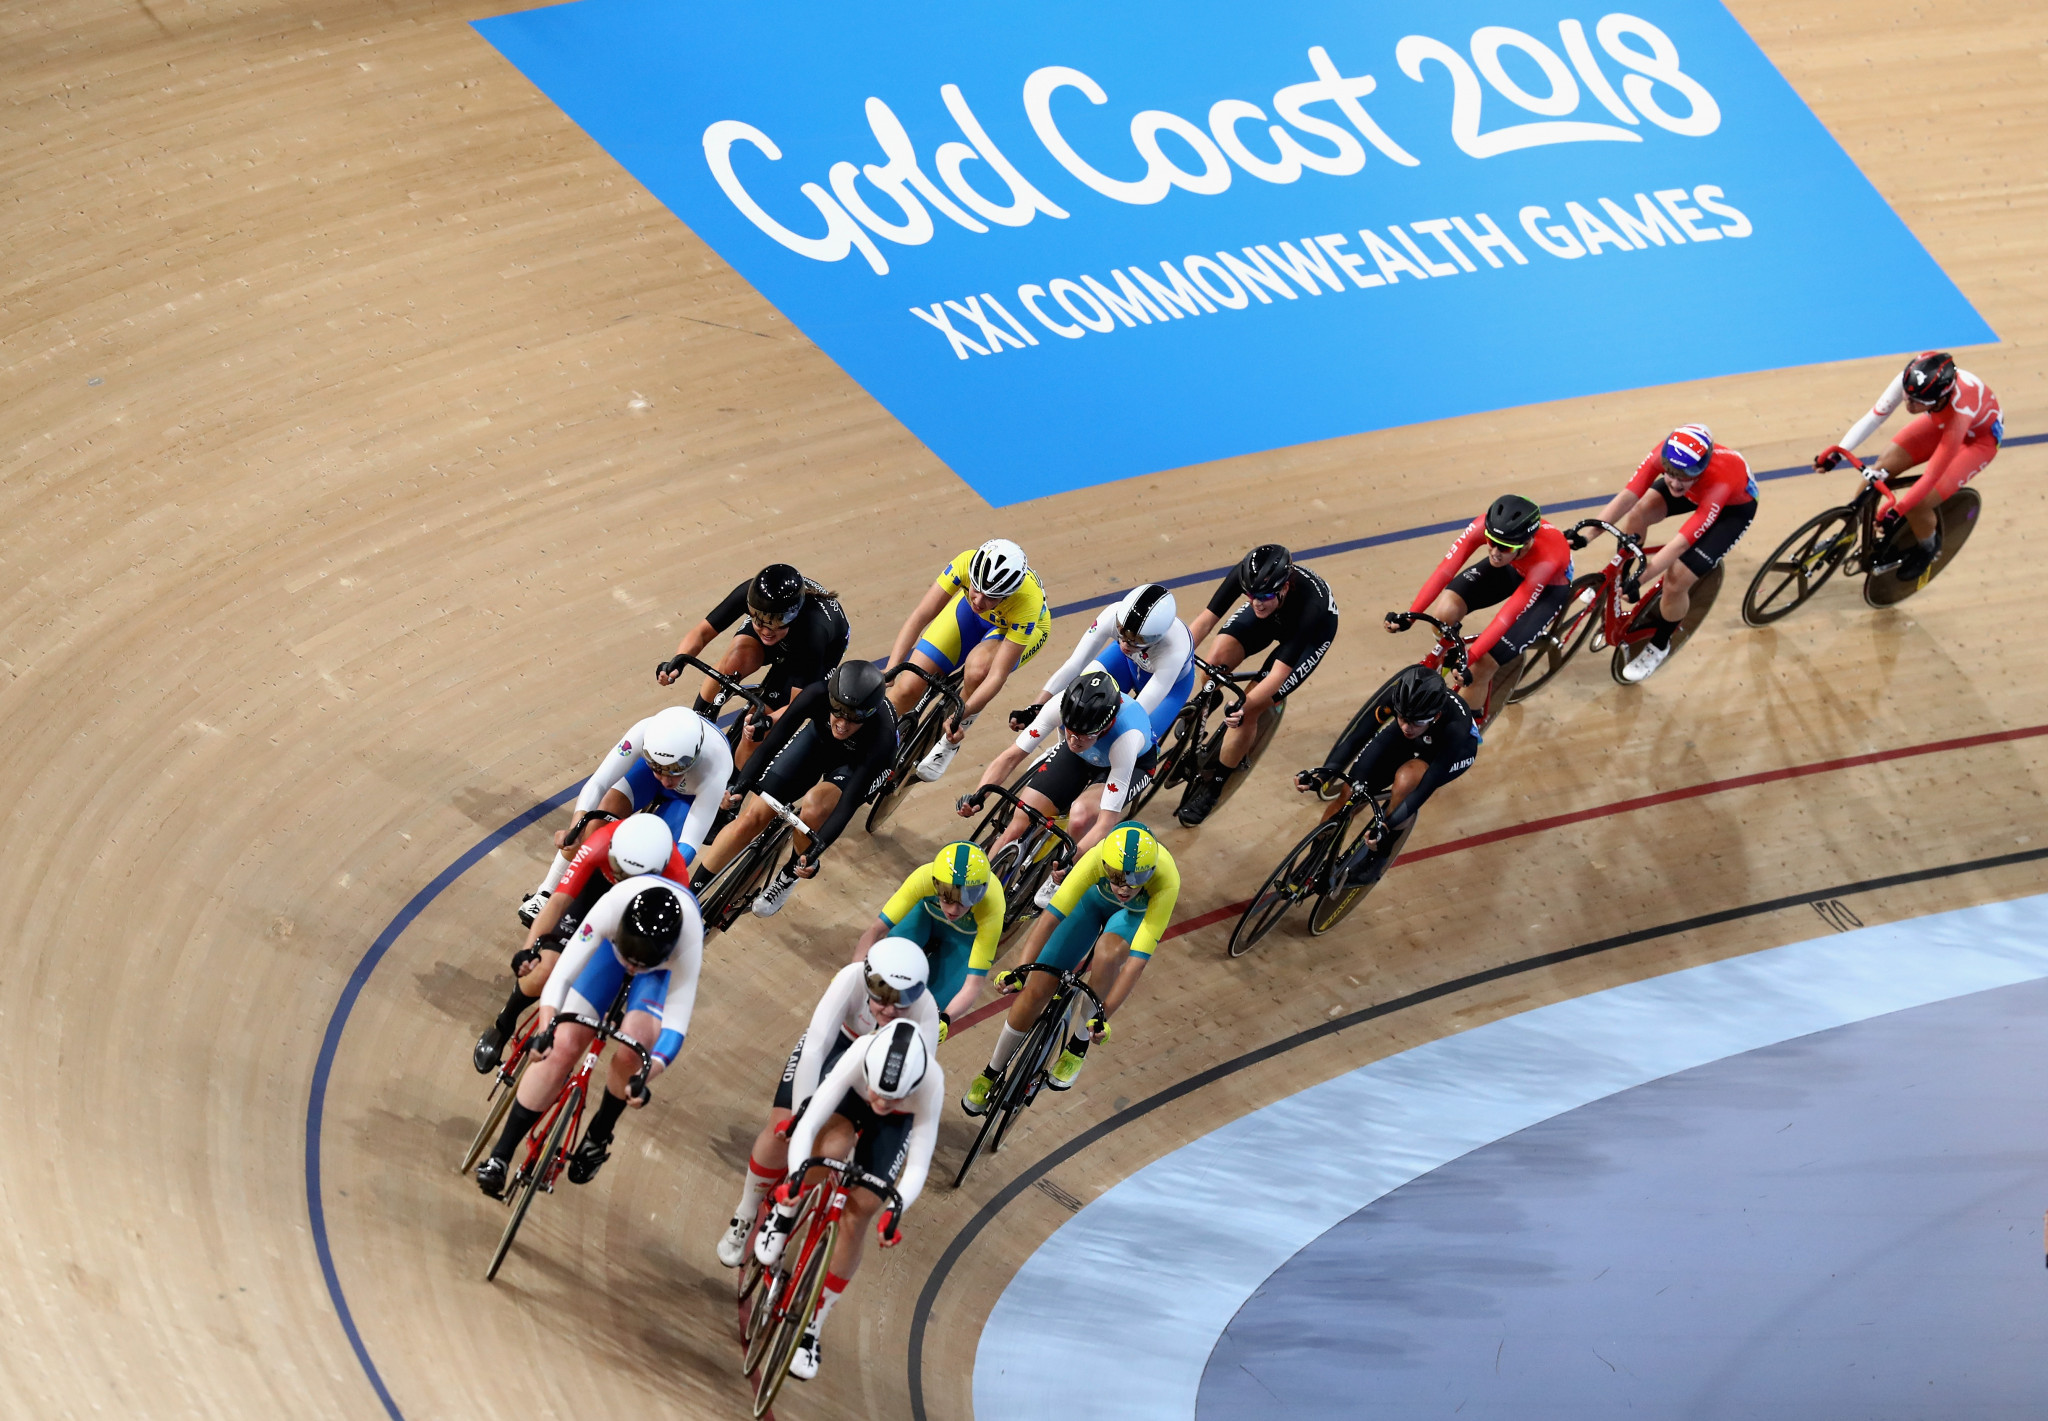 insidethegames is reporting LIVE from the Commonwealth Games in Gold Coast